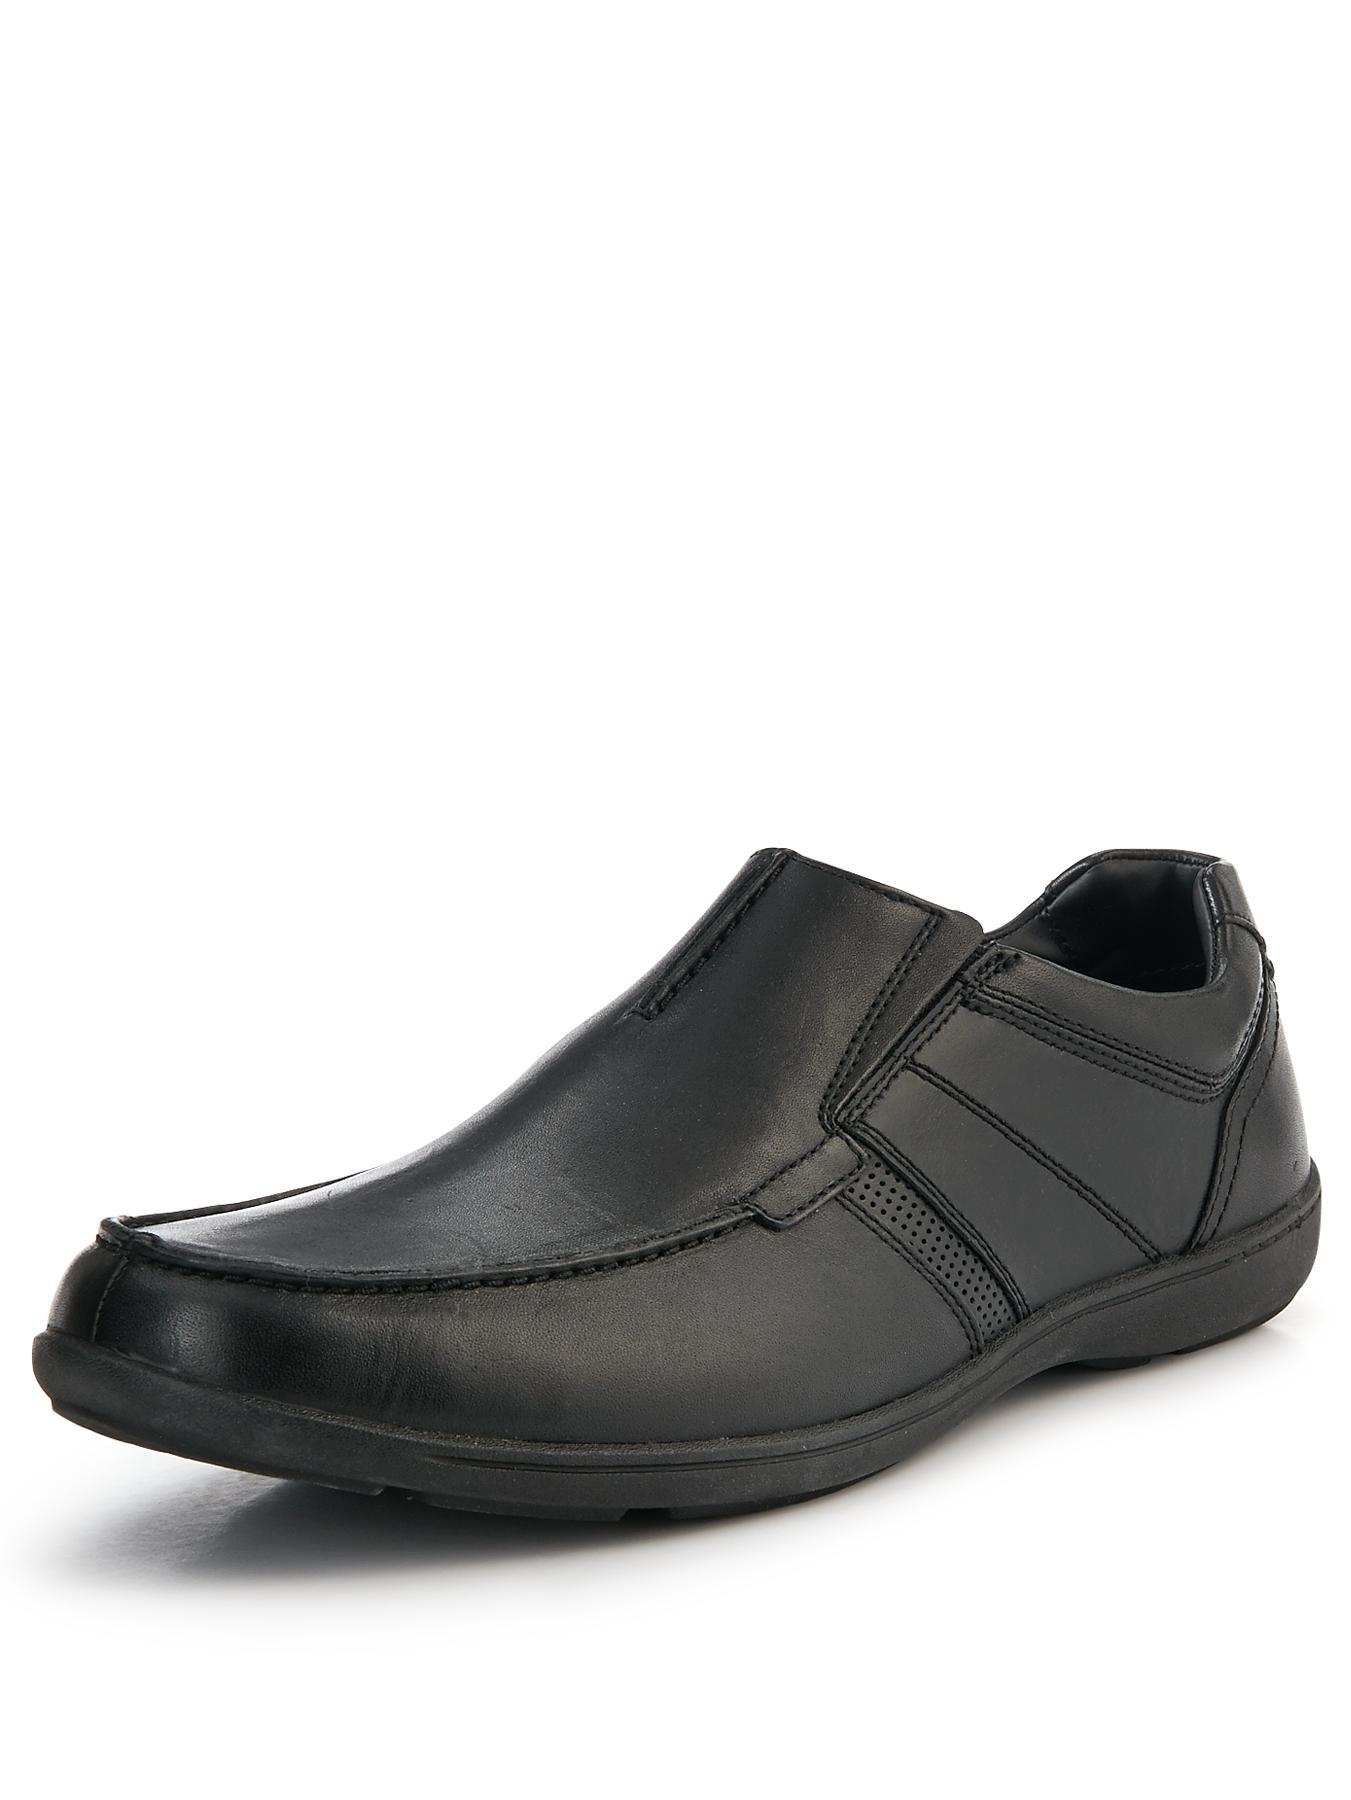 Bradley Fall Mens Slip-on Shoes, Black